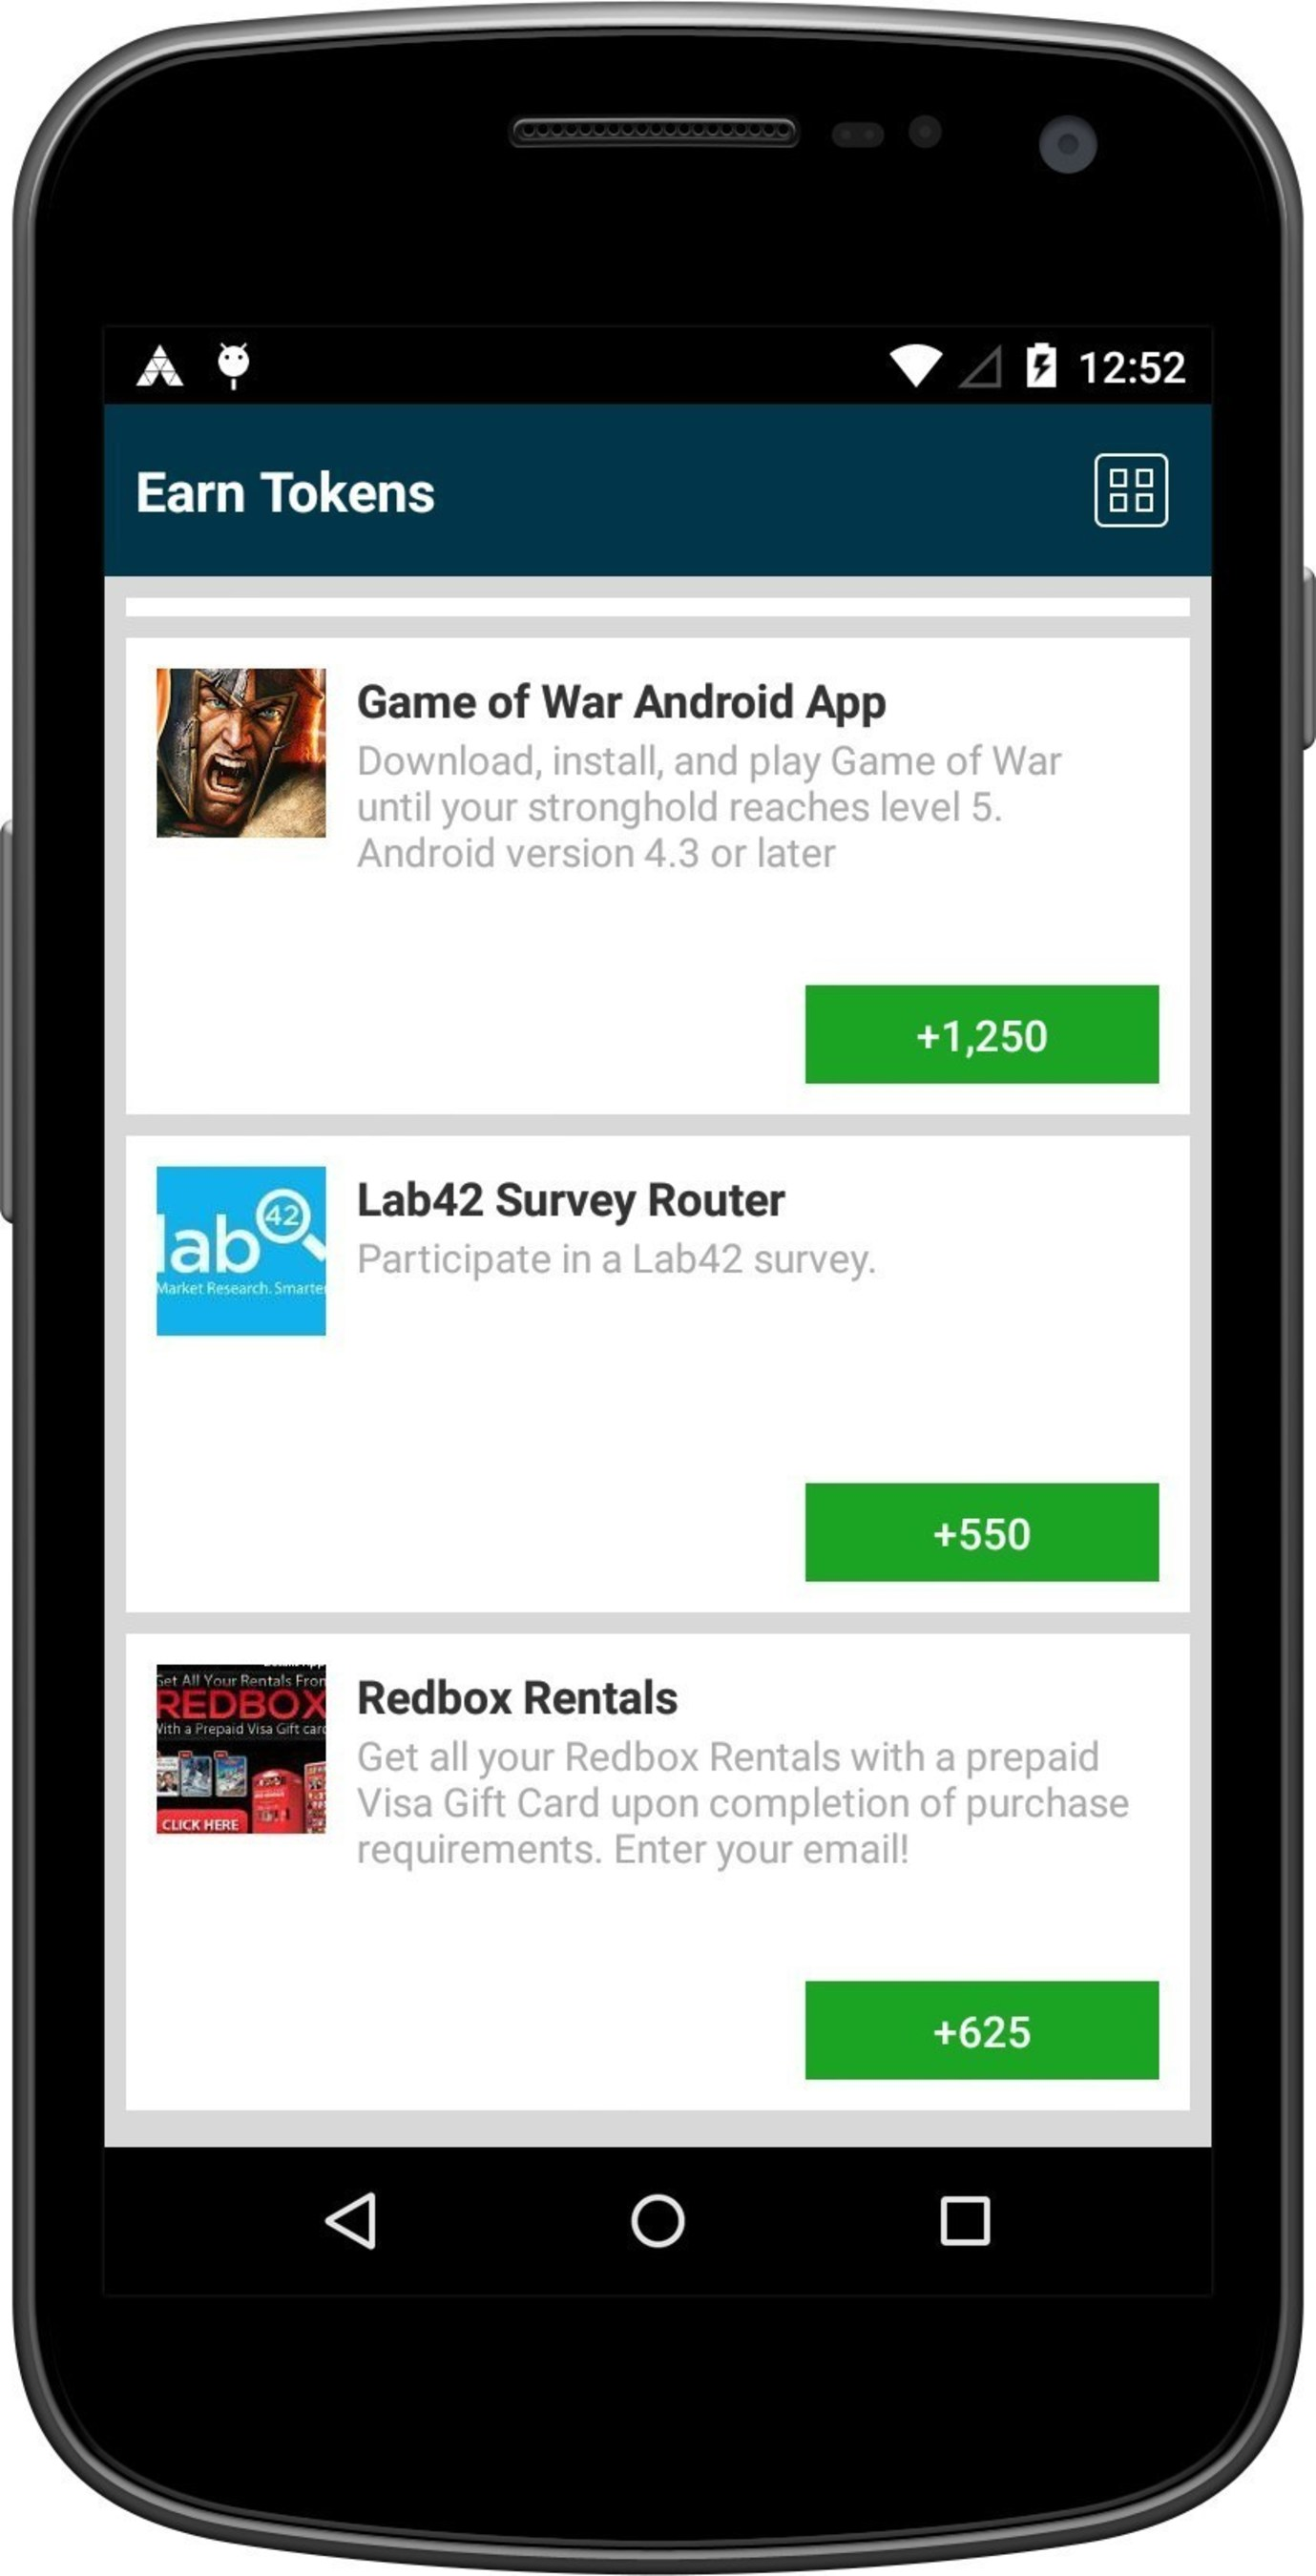 Adscend Media Launches Android and iOS SDKs to Help App Developers Create New Revenue Streams